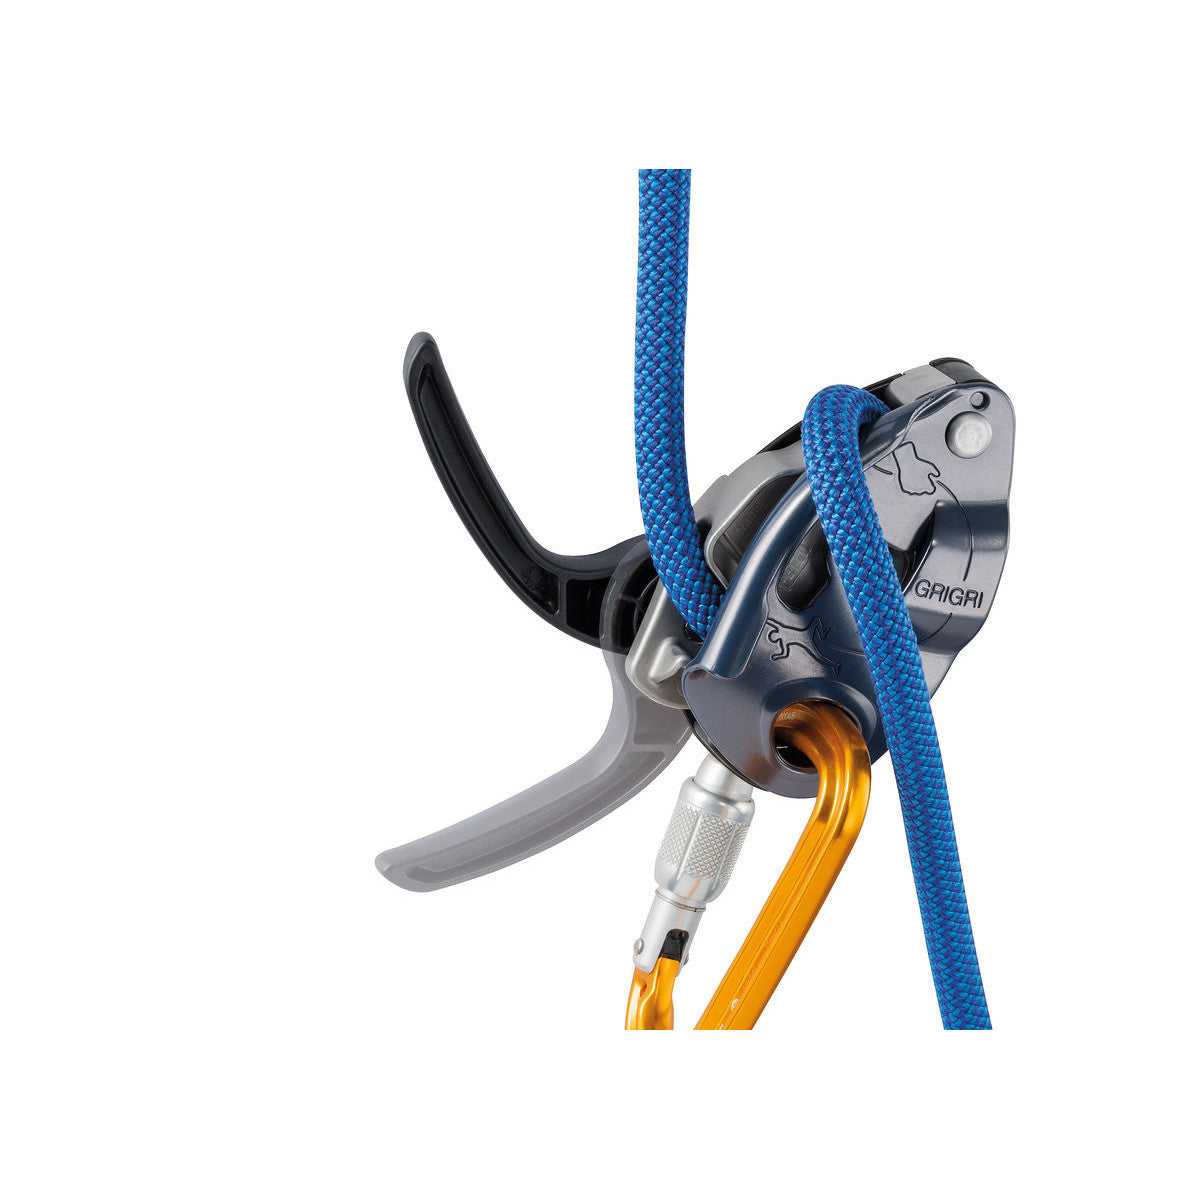 Petzl Grigri belay device in silver colour, shown in use with blue rope and yellow carabiner